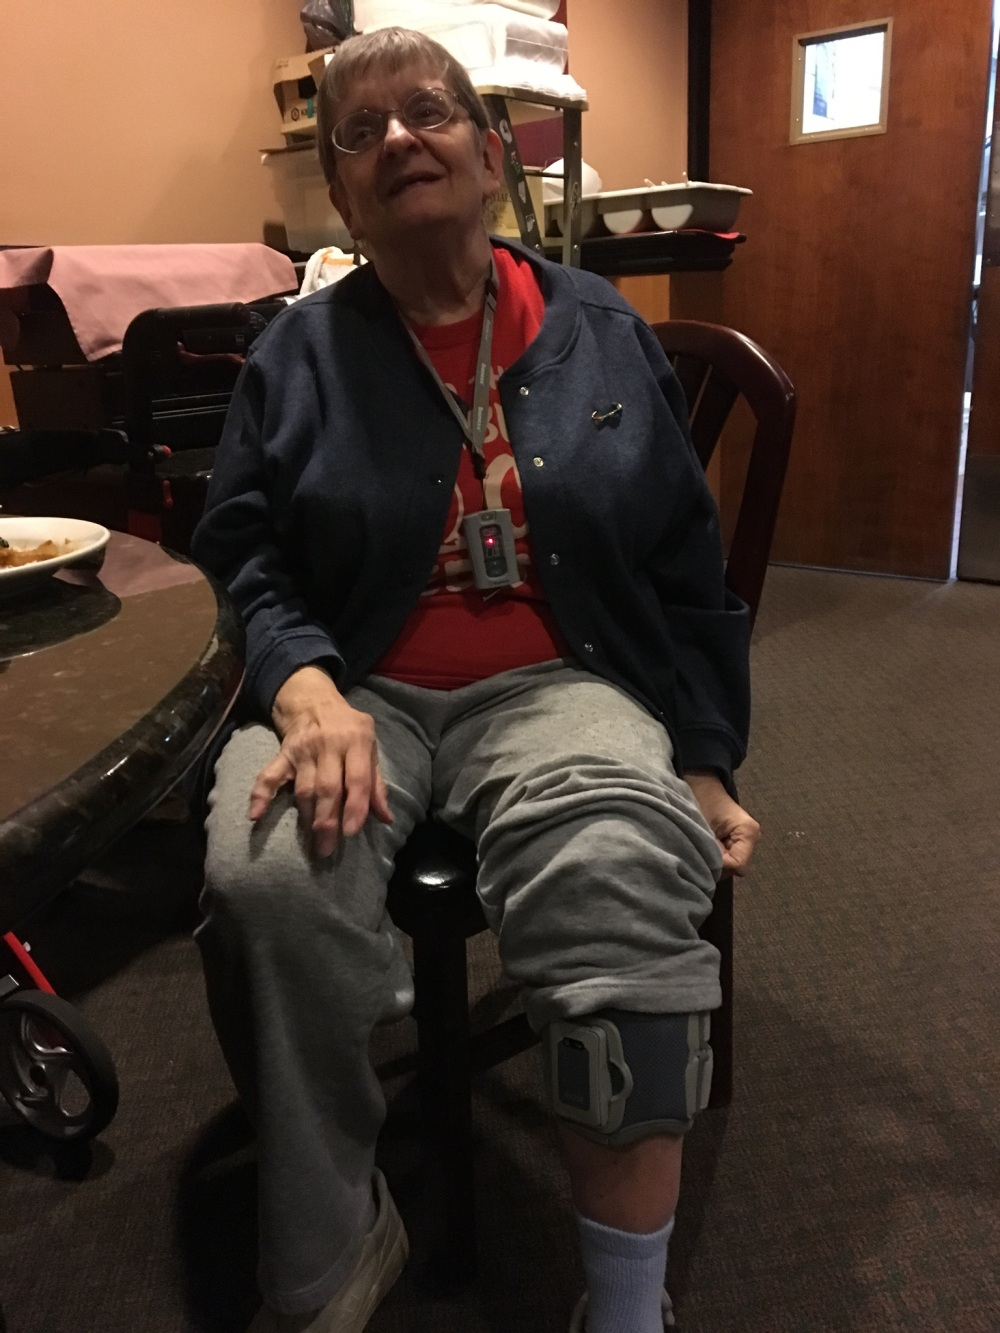 """My photo is of me sitting in a chair with my pant leg pulled up to show my new """"bionic"""" device which helps me walk."""